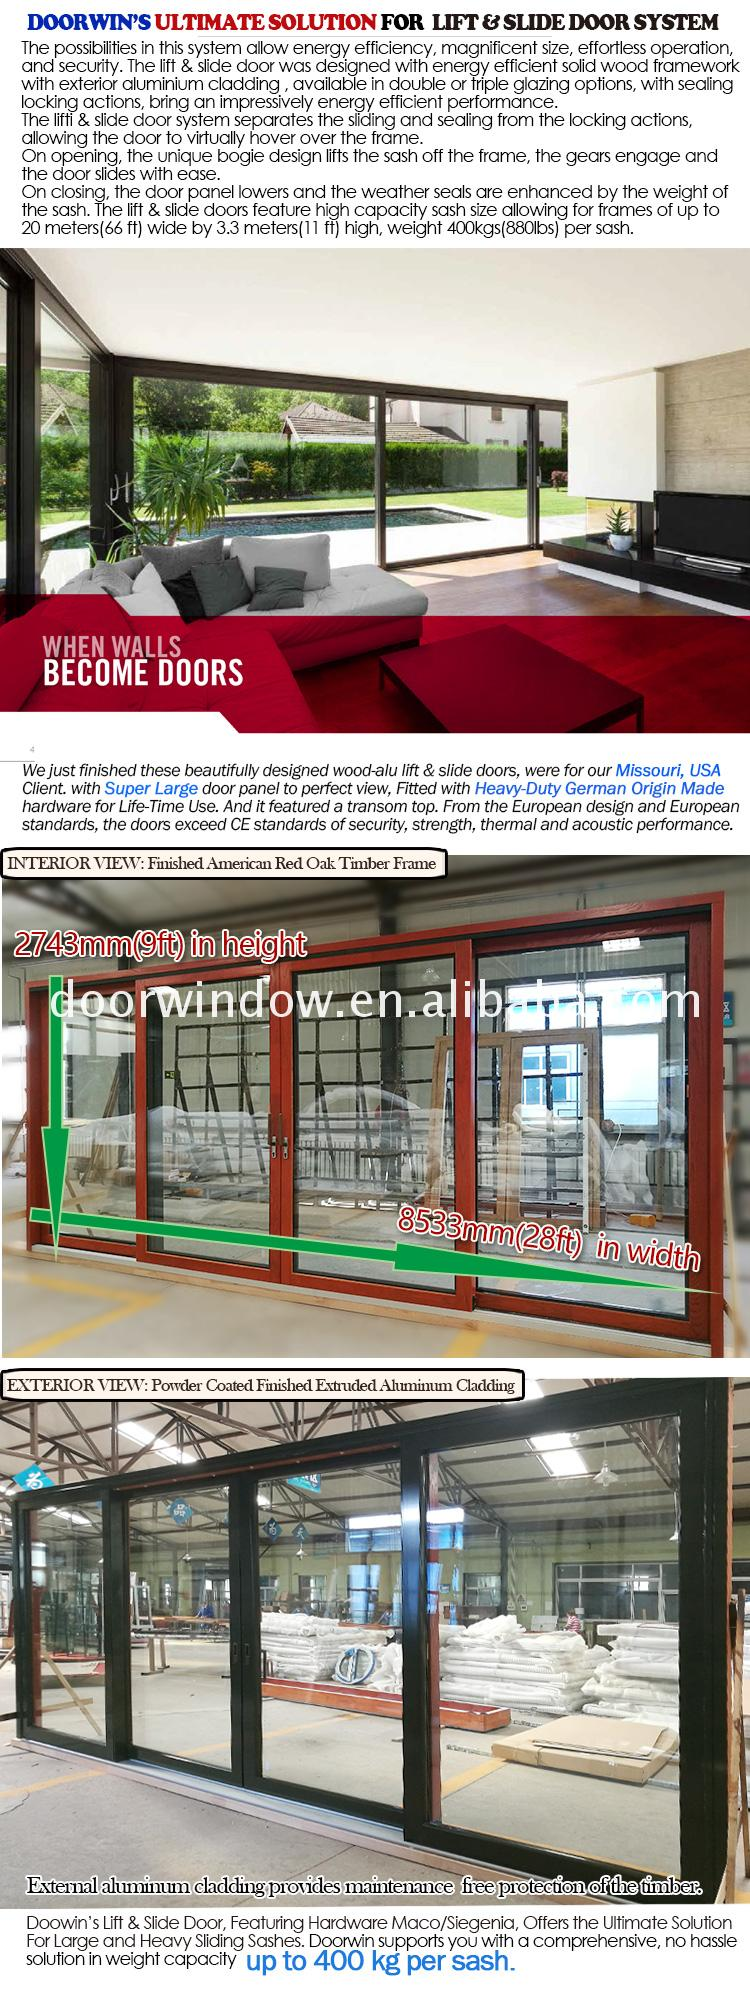 Original factory 13 foot slider door